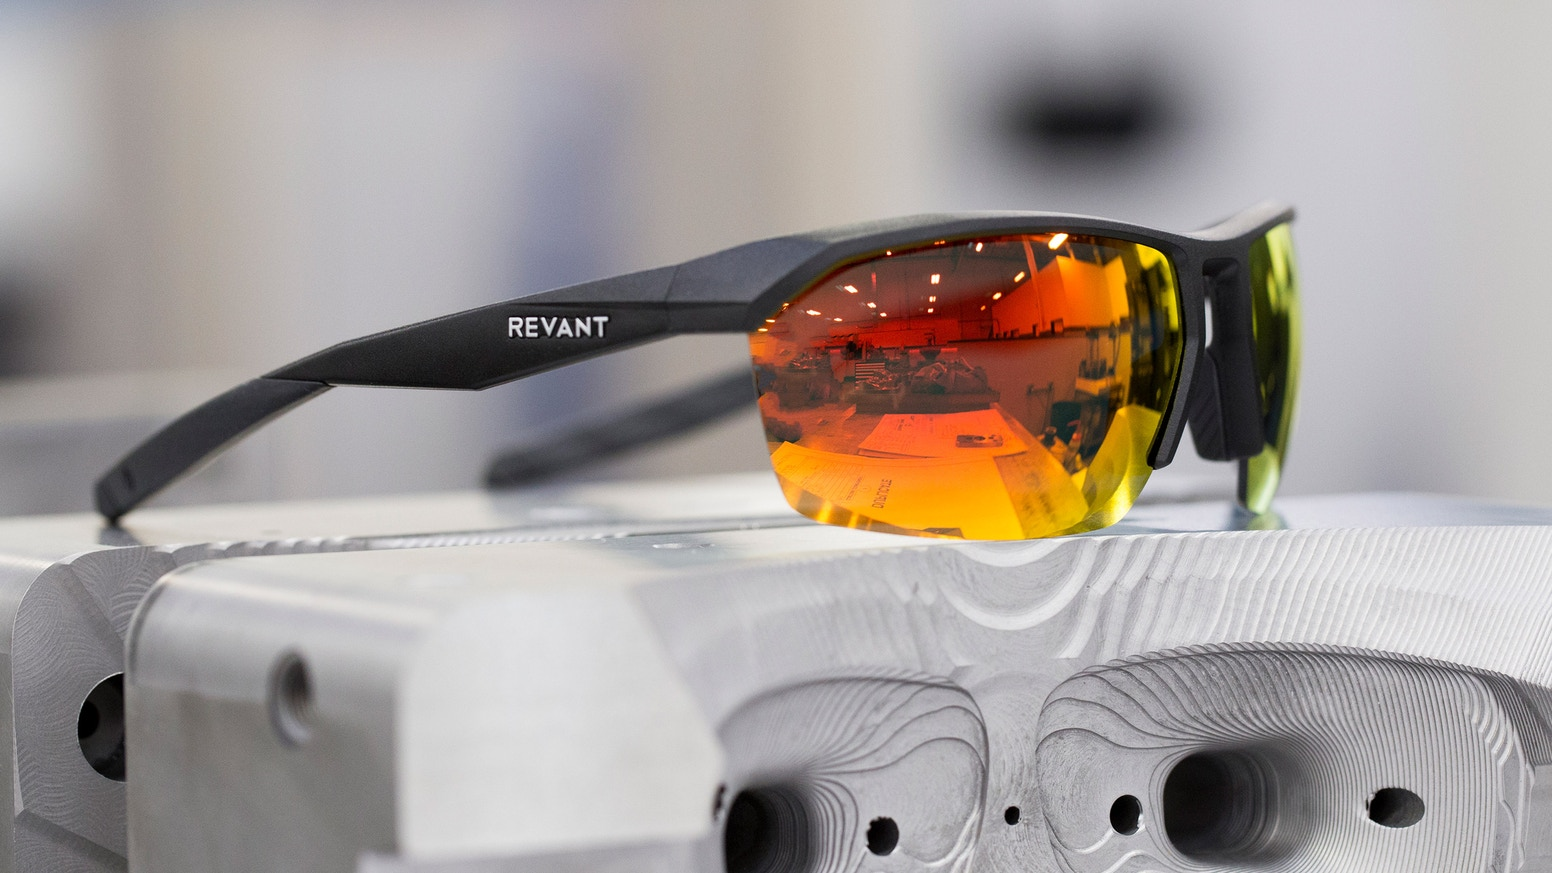 Introducing Revant Eyewear: A performance sunglass system with 3 styles designed to perform as well on day 10,000 as they did on day 1.